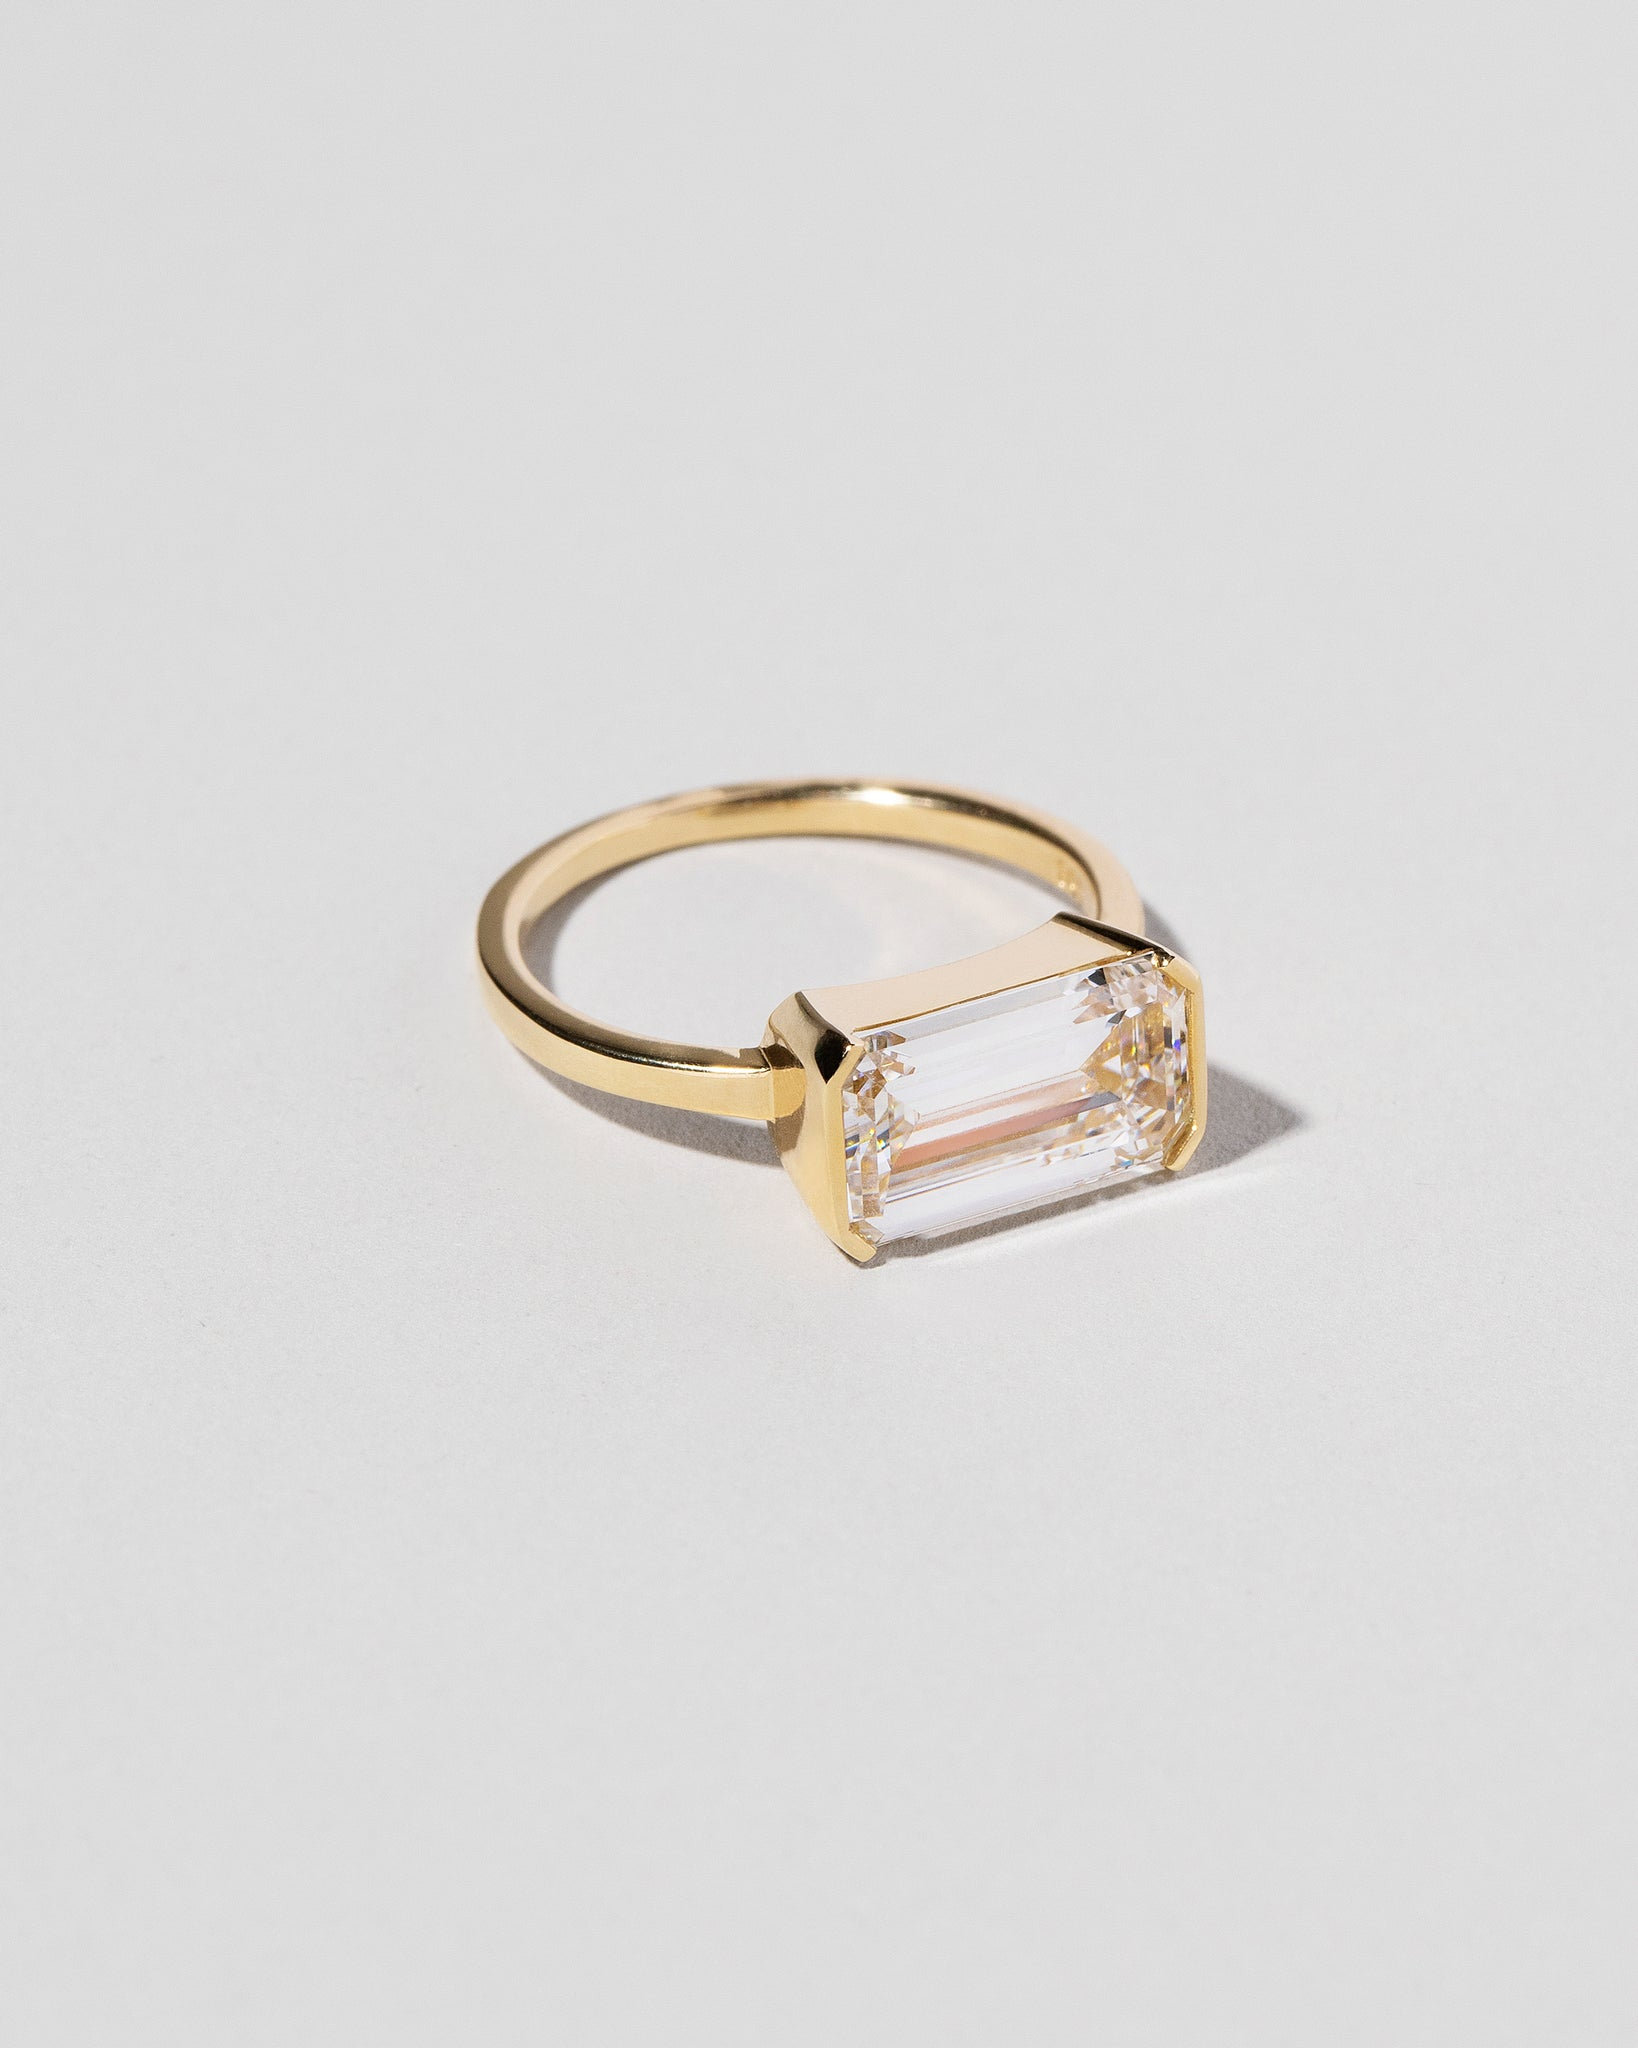 Left side view of Emerald Cut Diamond Solitaire Ring